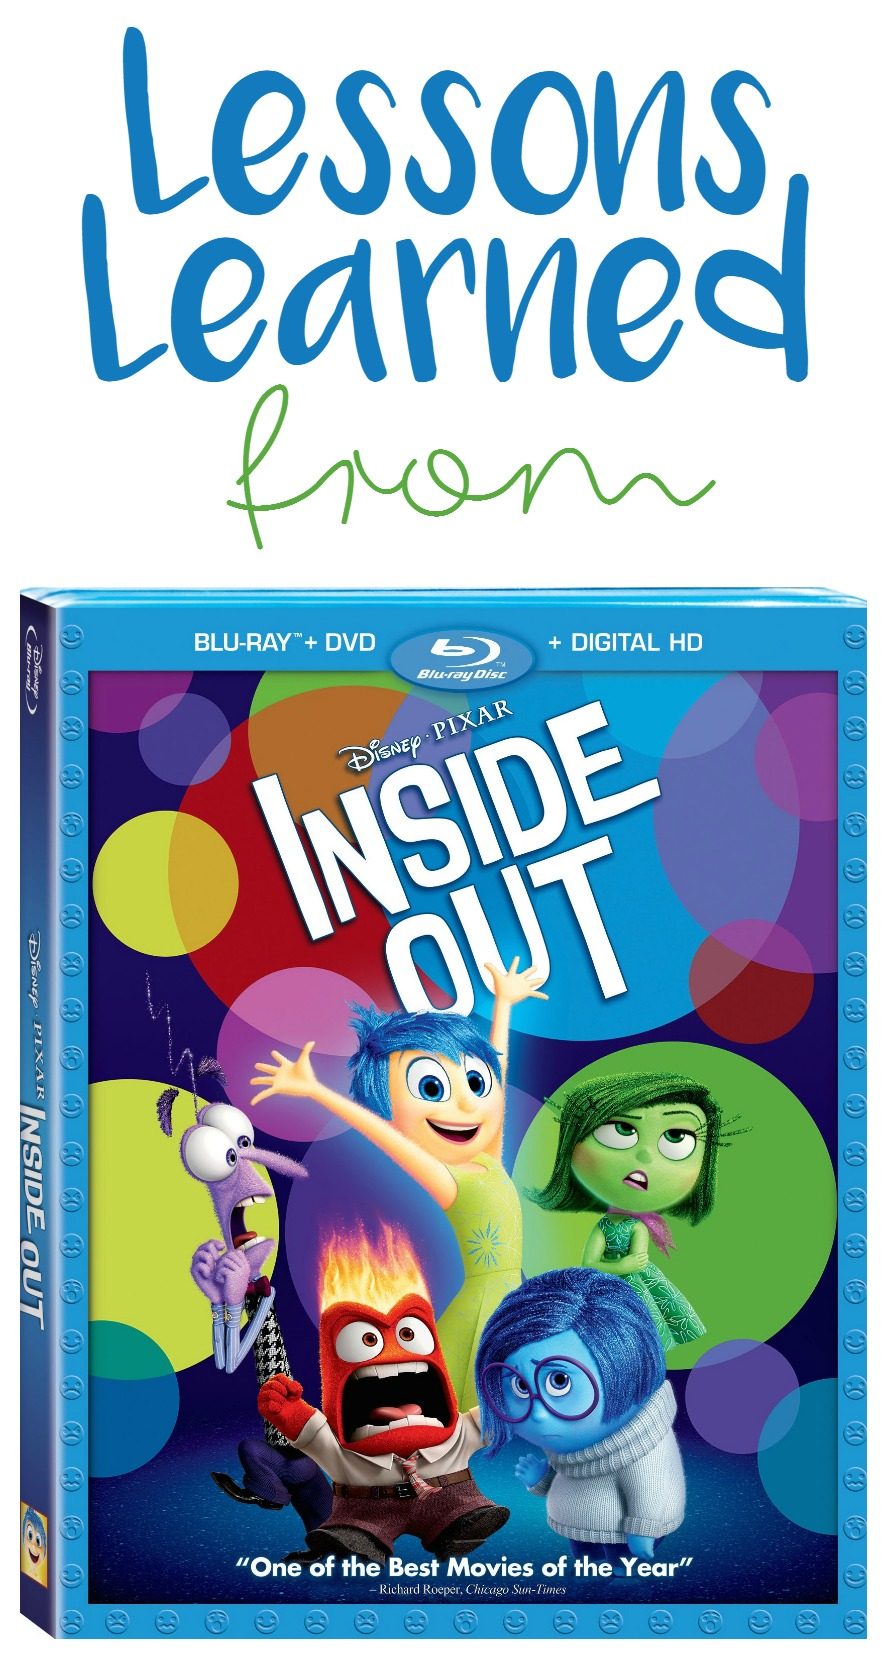 Inside Out | Definition of Inside Out by Merriam-Webster